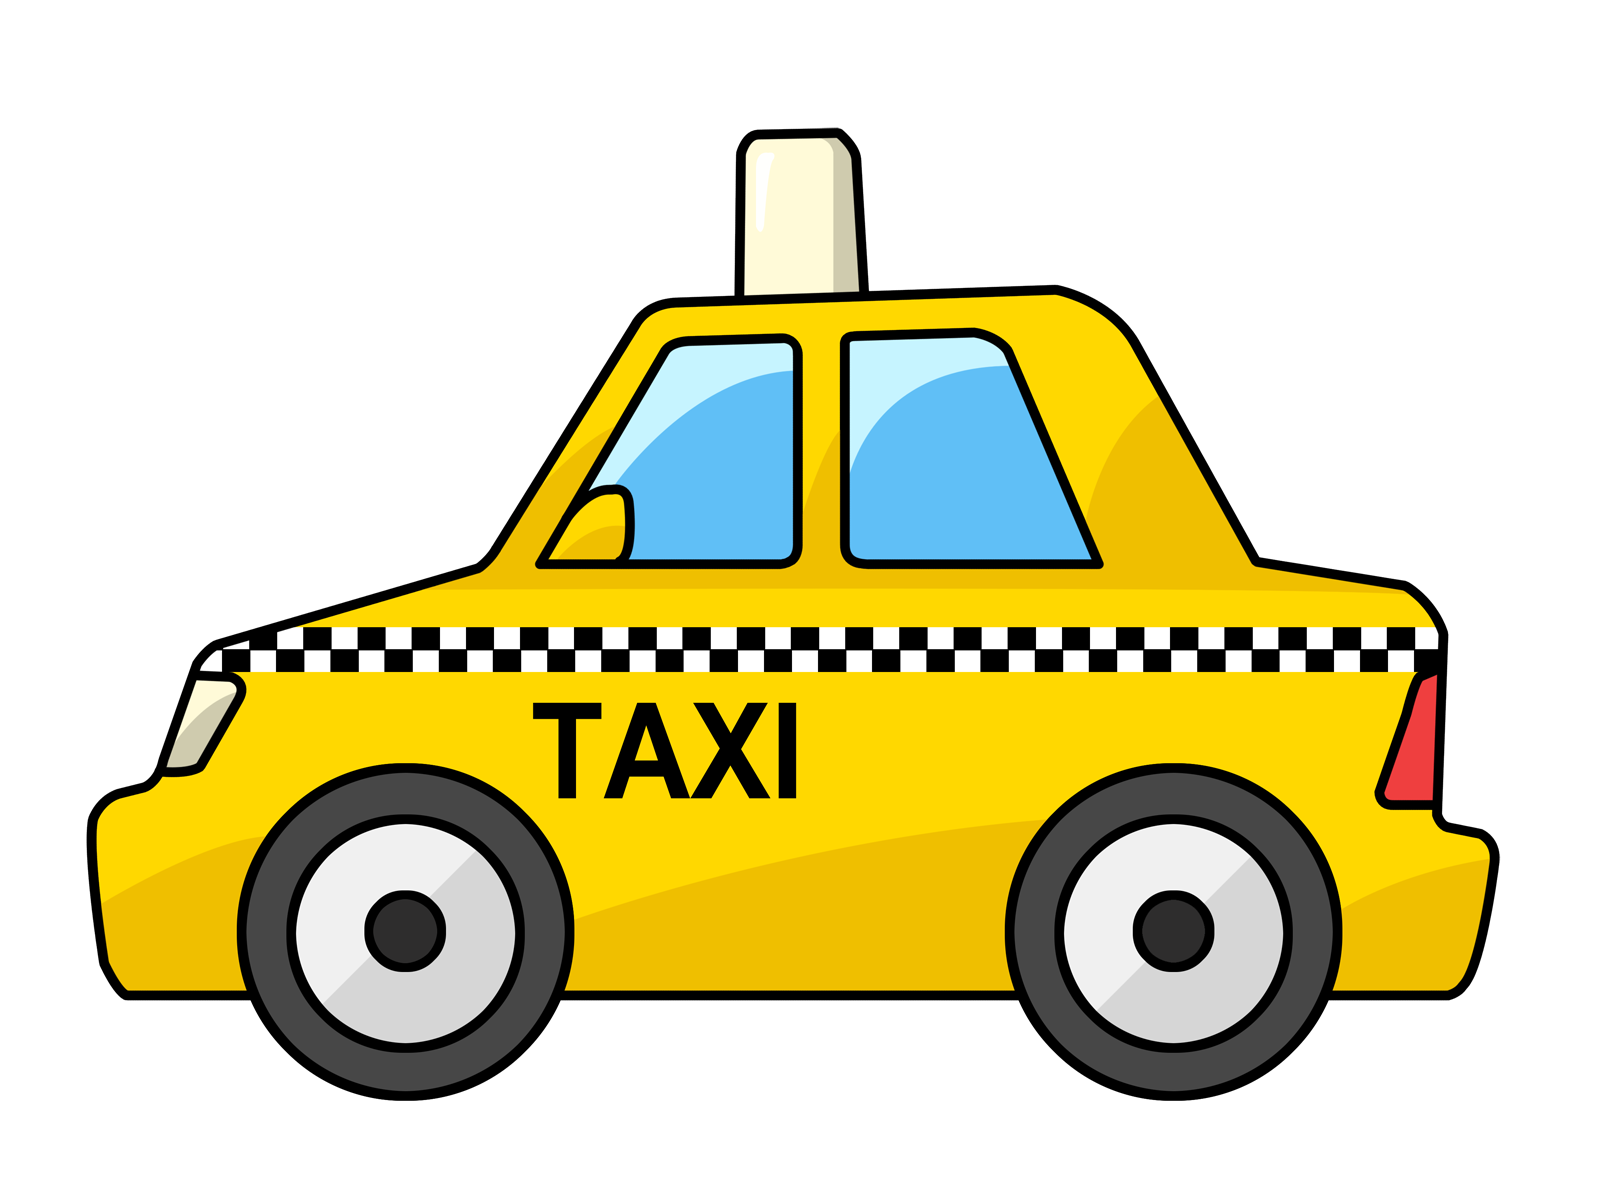 Taxi Services | Crestview Hills, KY - Official Website